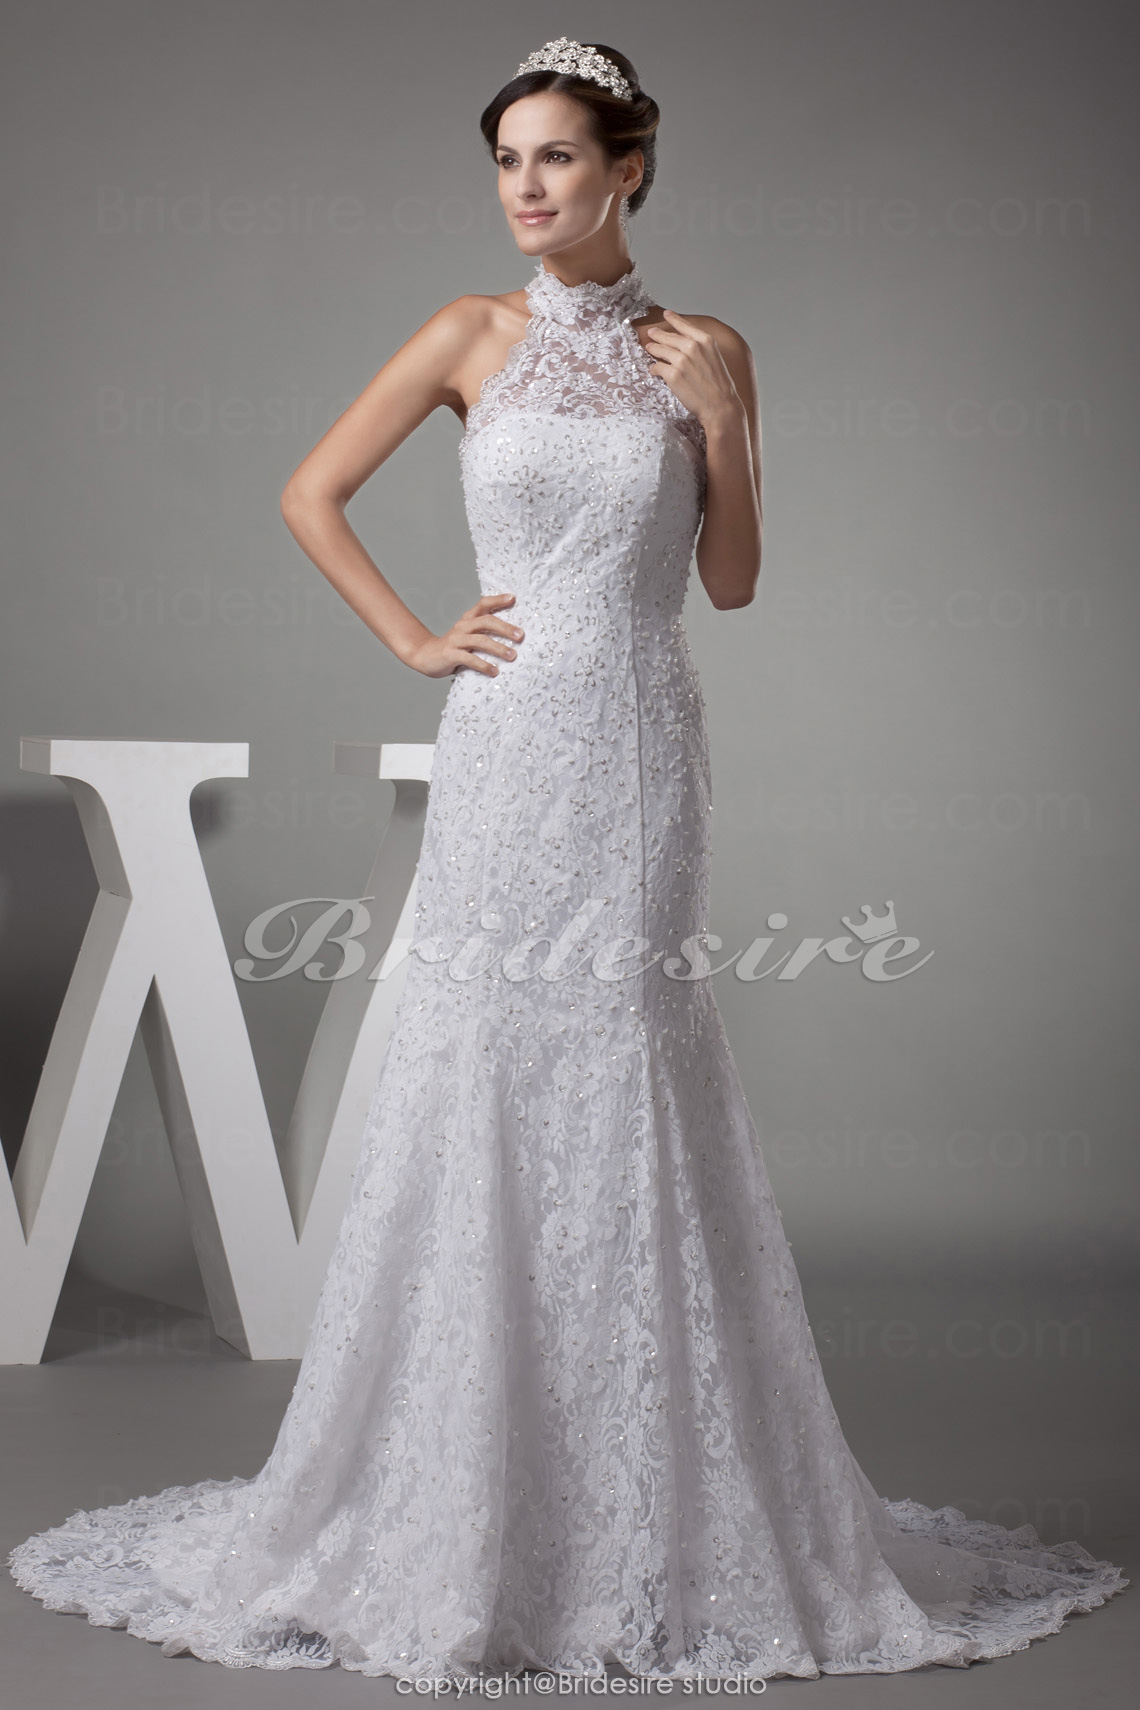 Trumpet/Mermaid High Neck Sweep Train Sleeveless Lace Wedding Dress